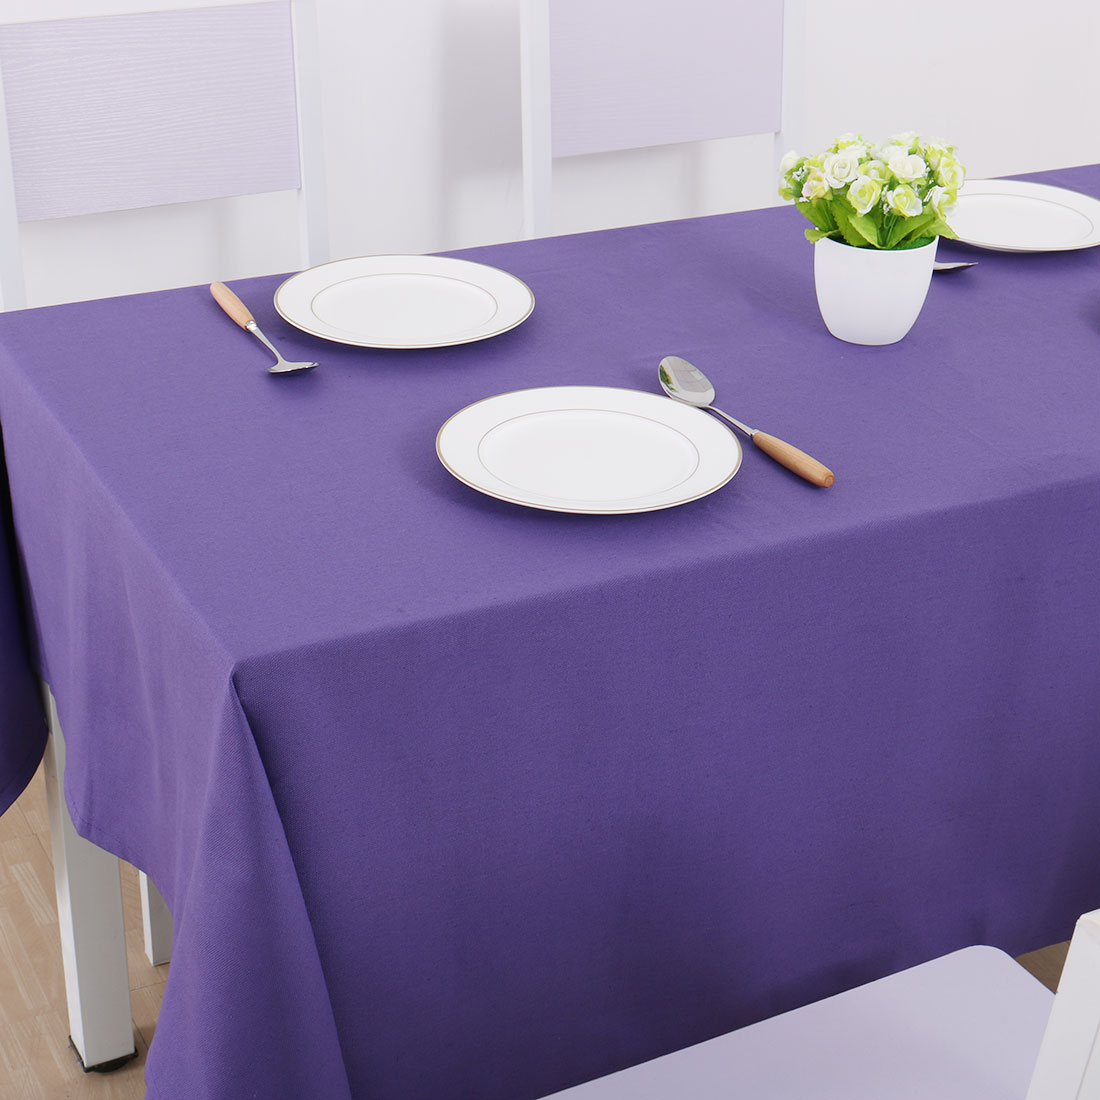 """Vintage Rectangle Cotton Linen Tablecloth Purple 55""""x71"""" Water Stain Resistant - image 4 of 7"""